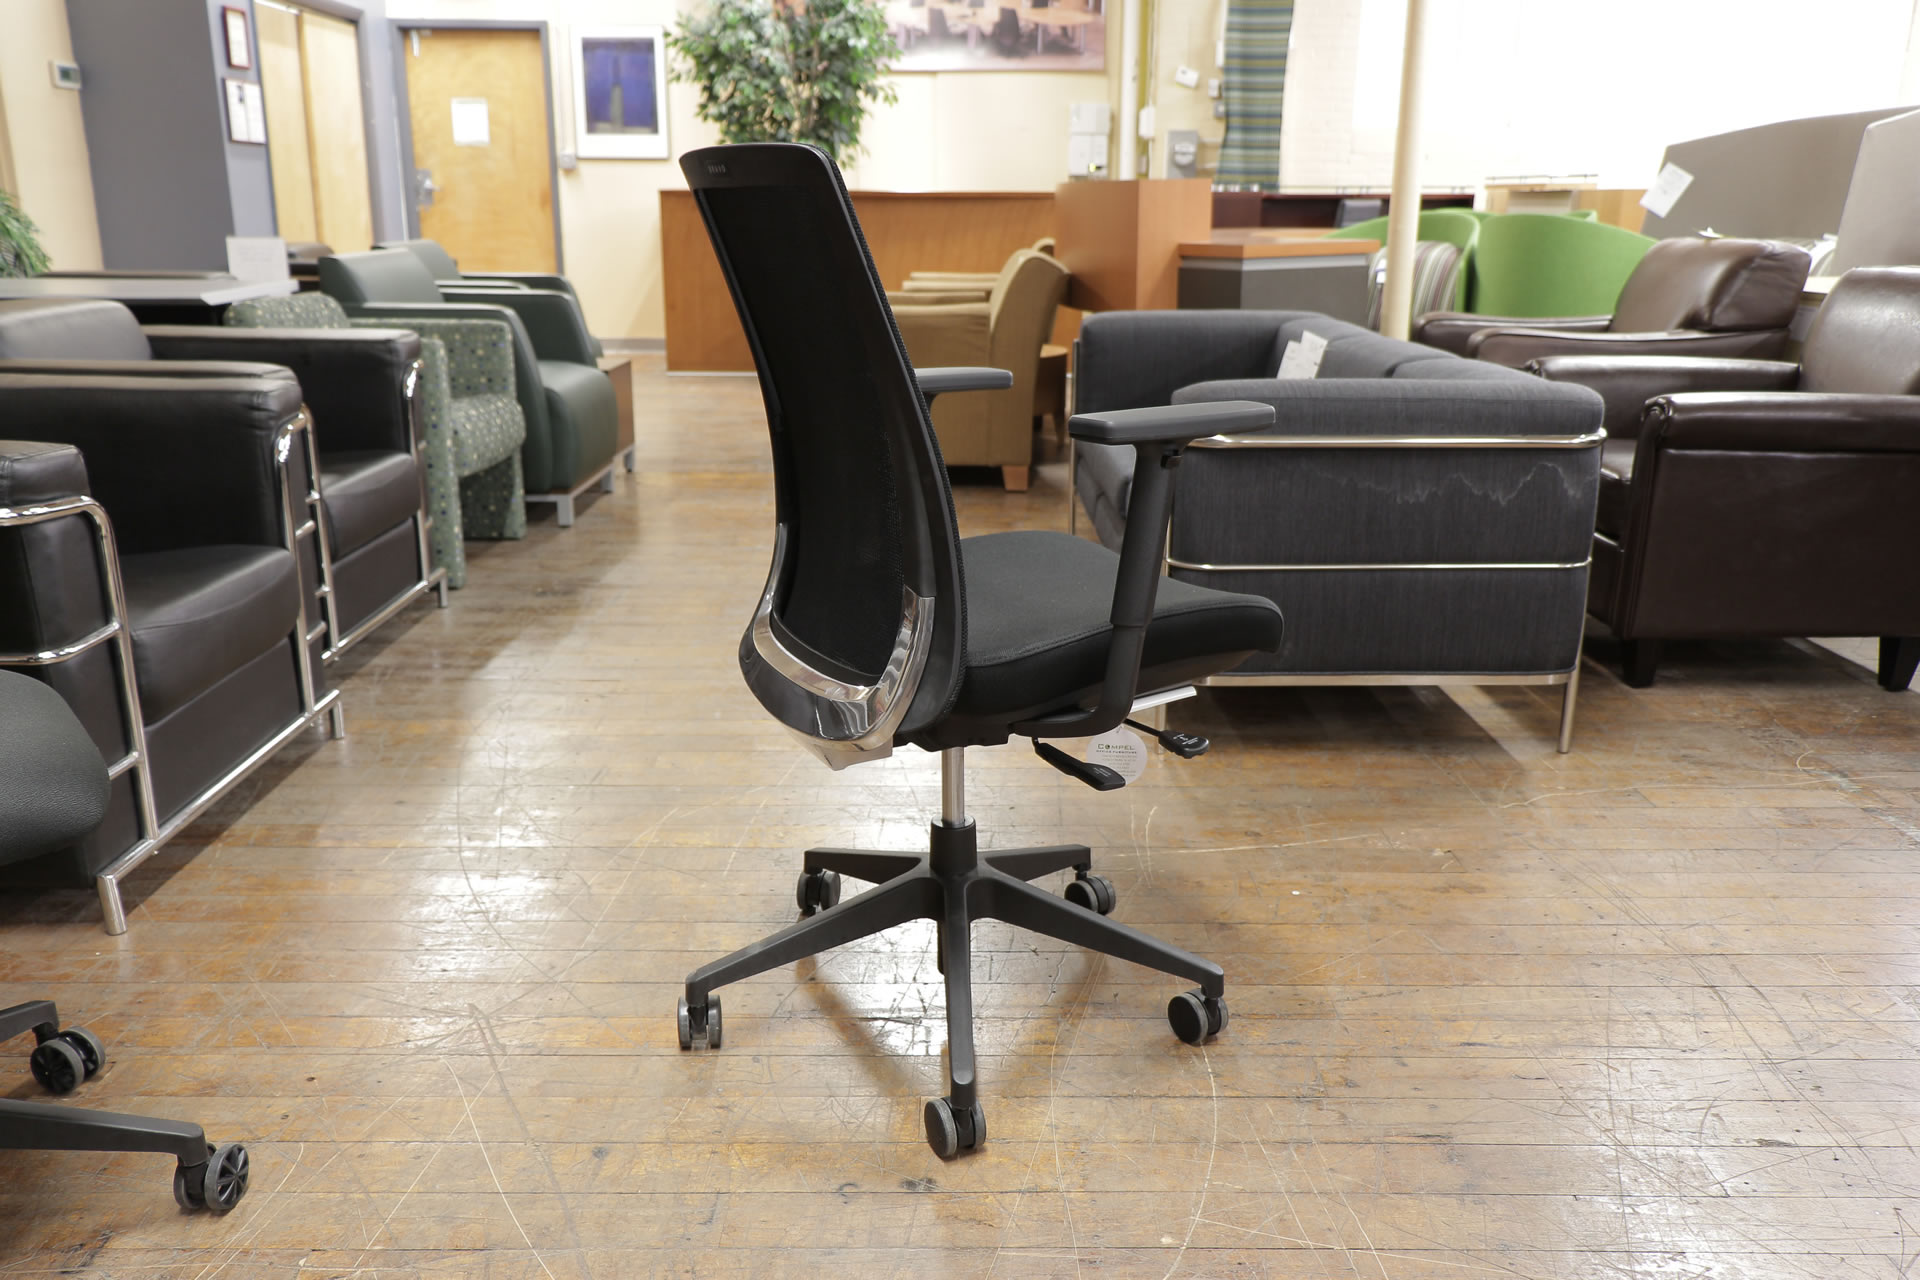 peartreeofficefurniture_peartreeofficefurniture_peartreeofficefurniture_img_9588.jpg